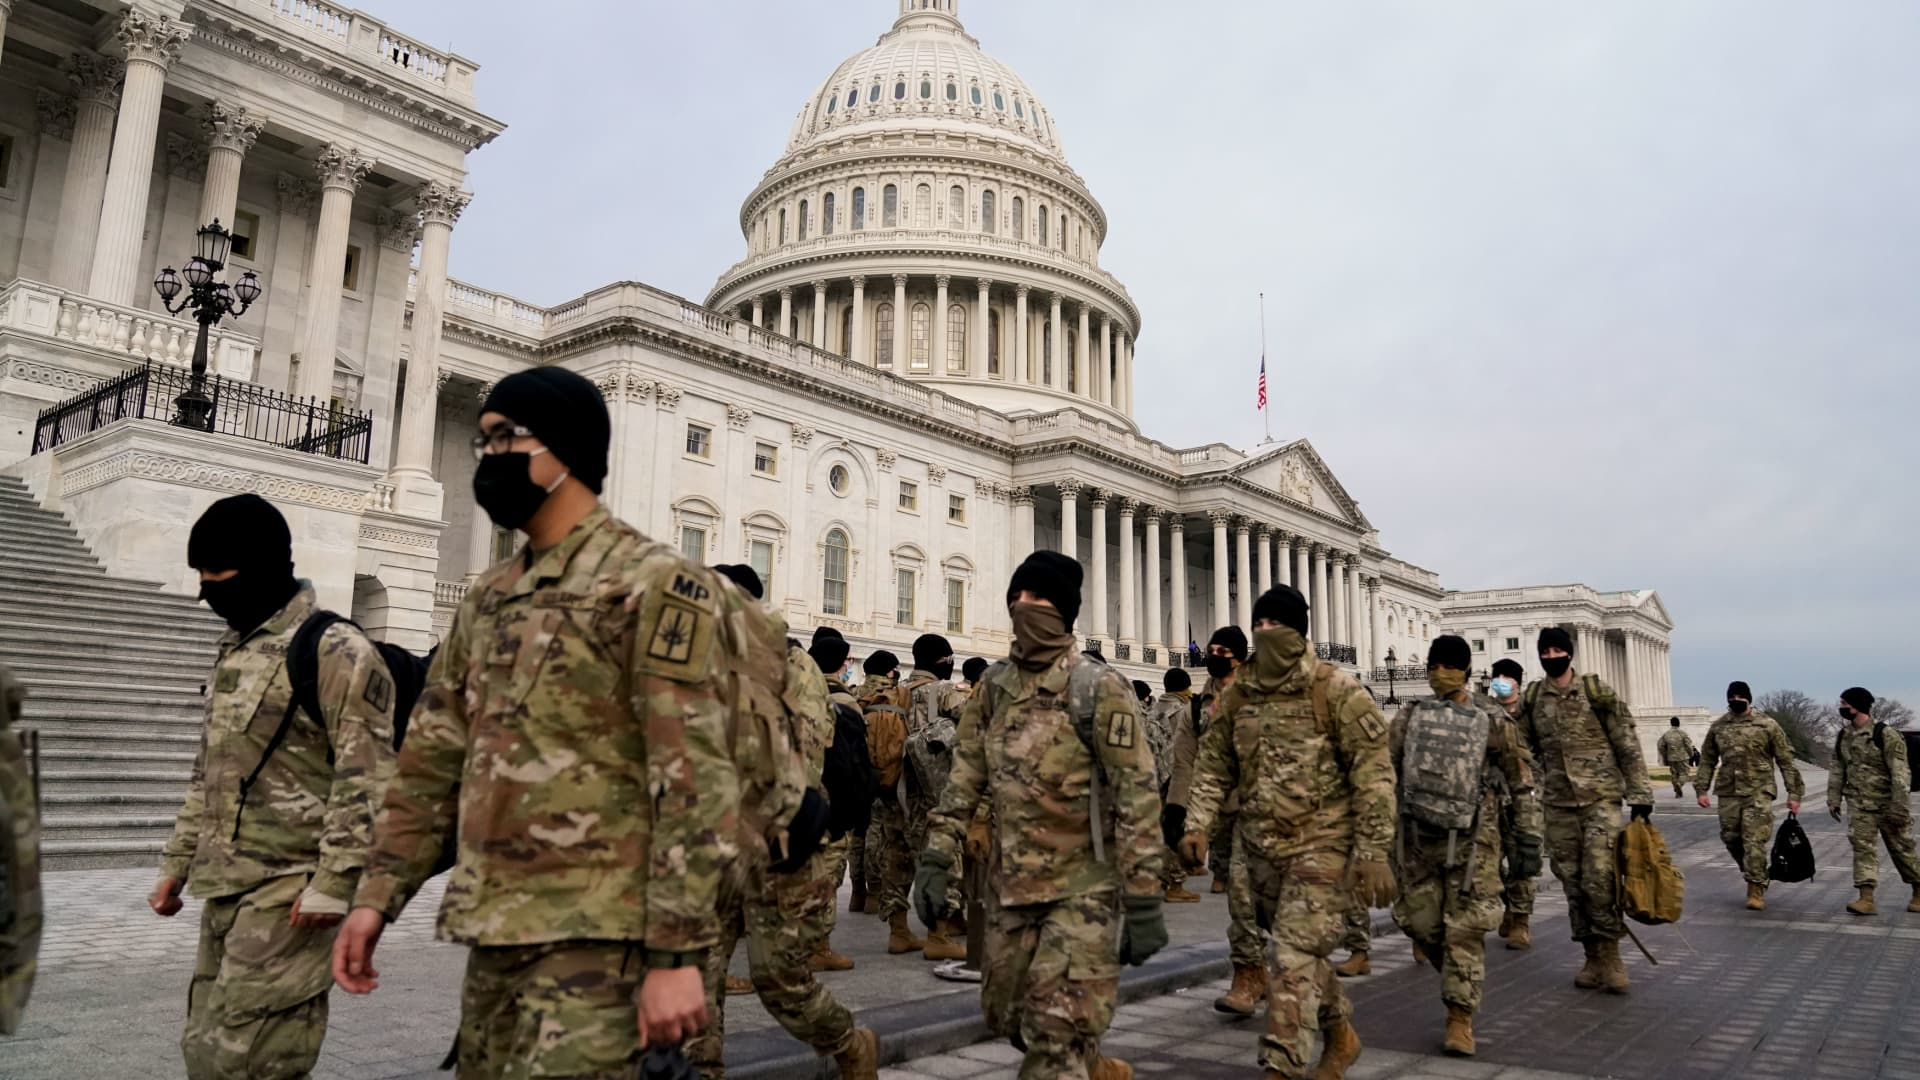 Members of the National Guard arrive to the U.S. Capitol days after supporters of U.S. President Donald Trump stormed the Capitol in Washington, U.S. January 11, 2021.